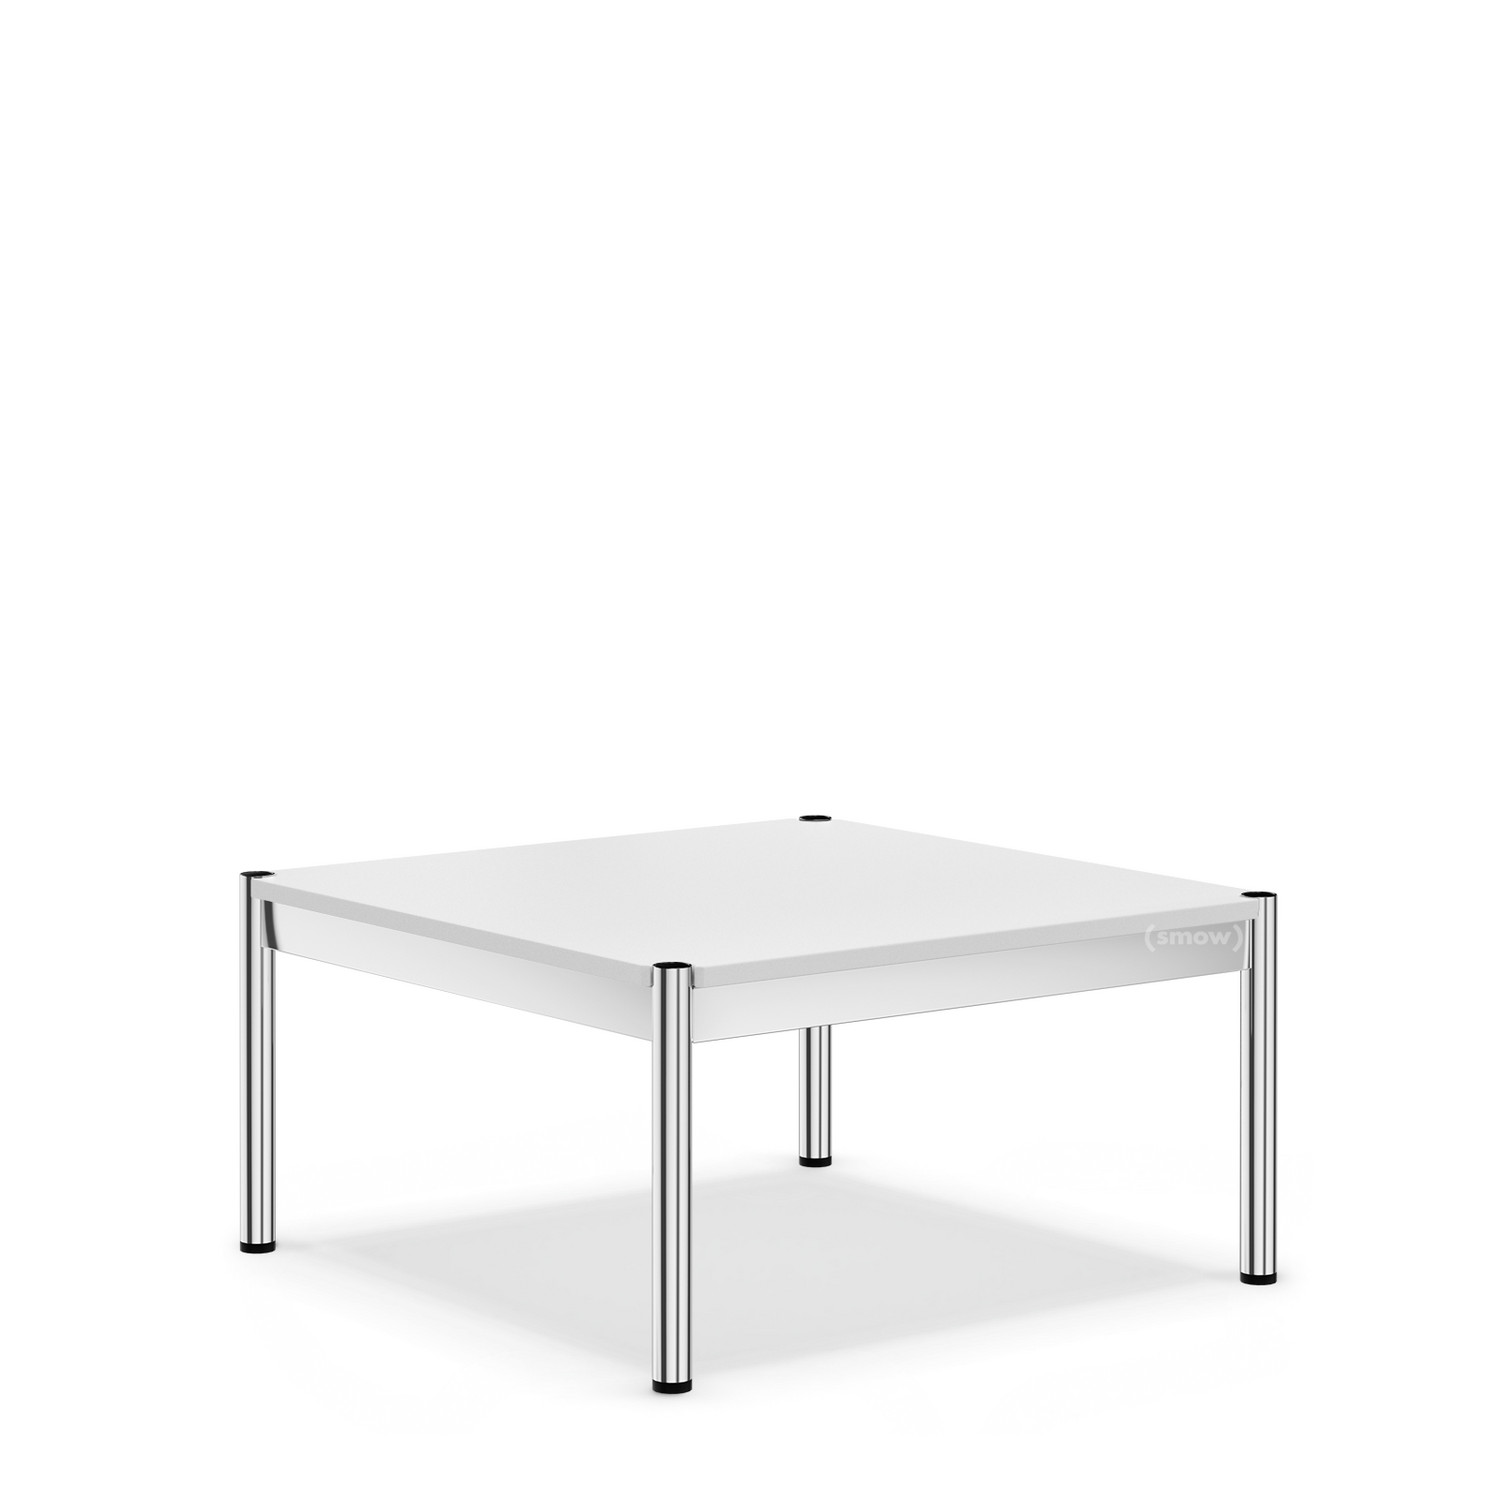 Usm Couchtisch Usm Haller Coffee Table 75 X 75 Cm Mdf Usm Colours Pure White